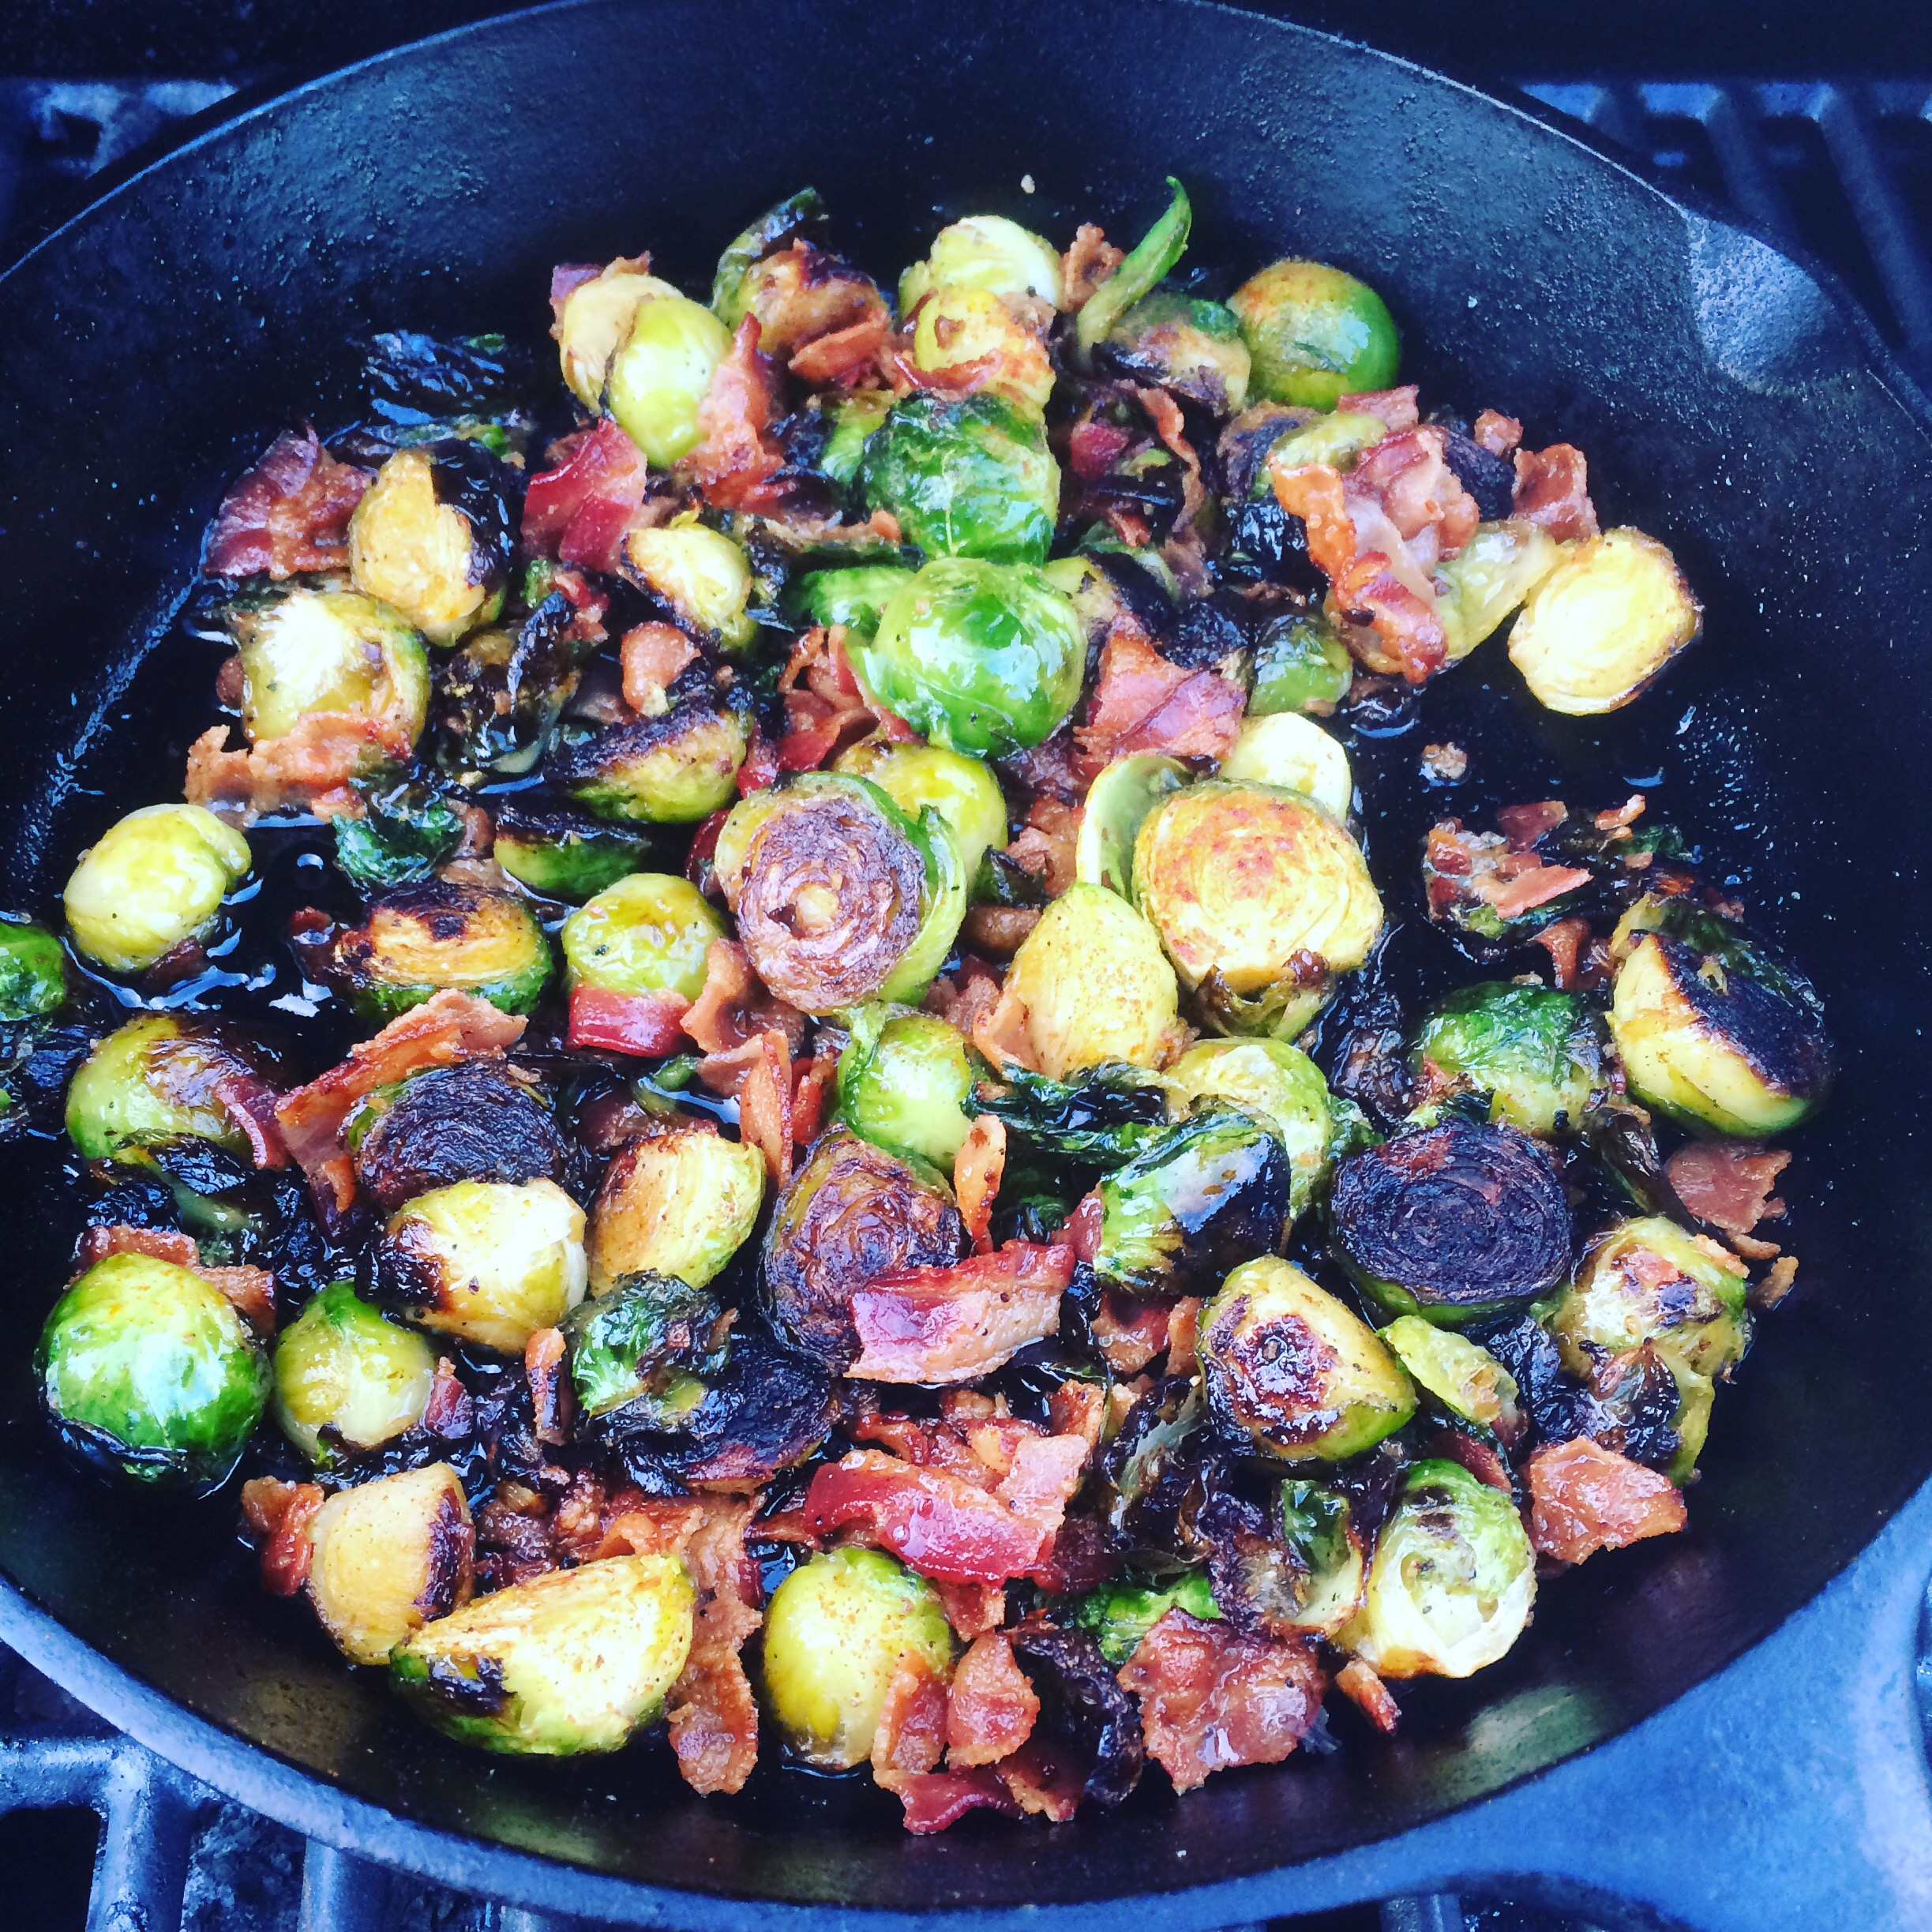 My Favorite Brussels Sprouts Recipe